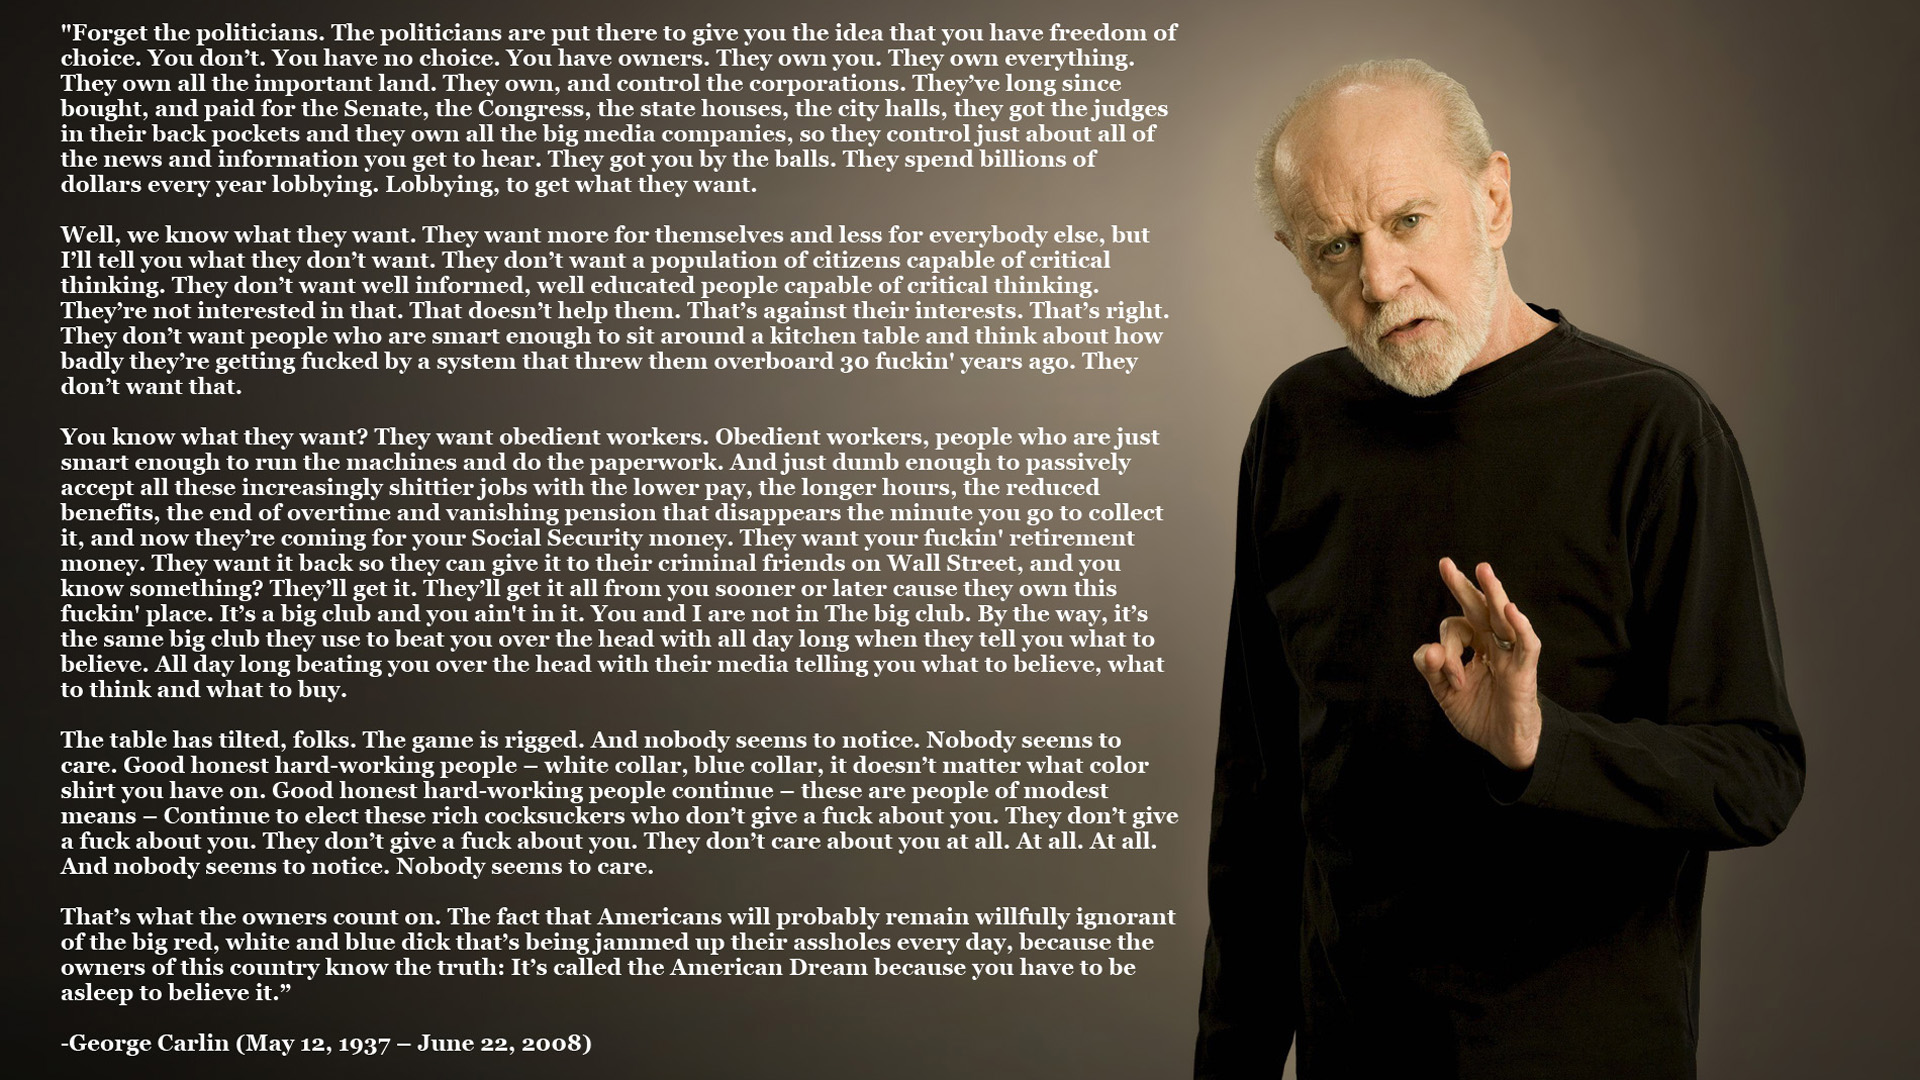 http://media.moddb.com/images/groups/1/3/2923/George_Carlin.jpg